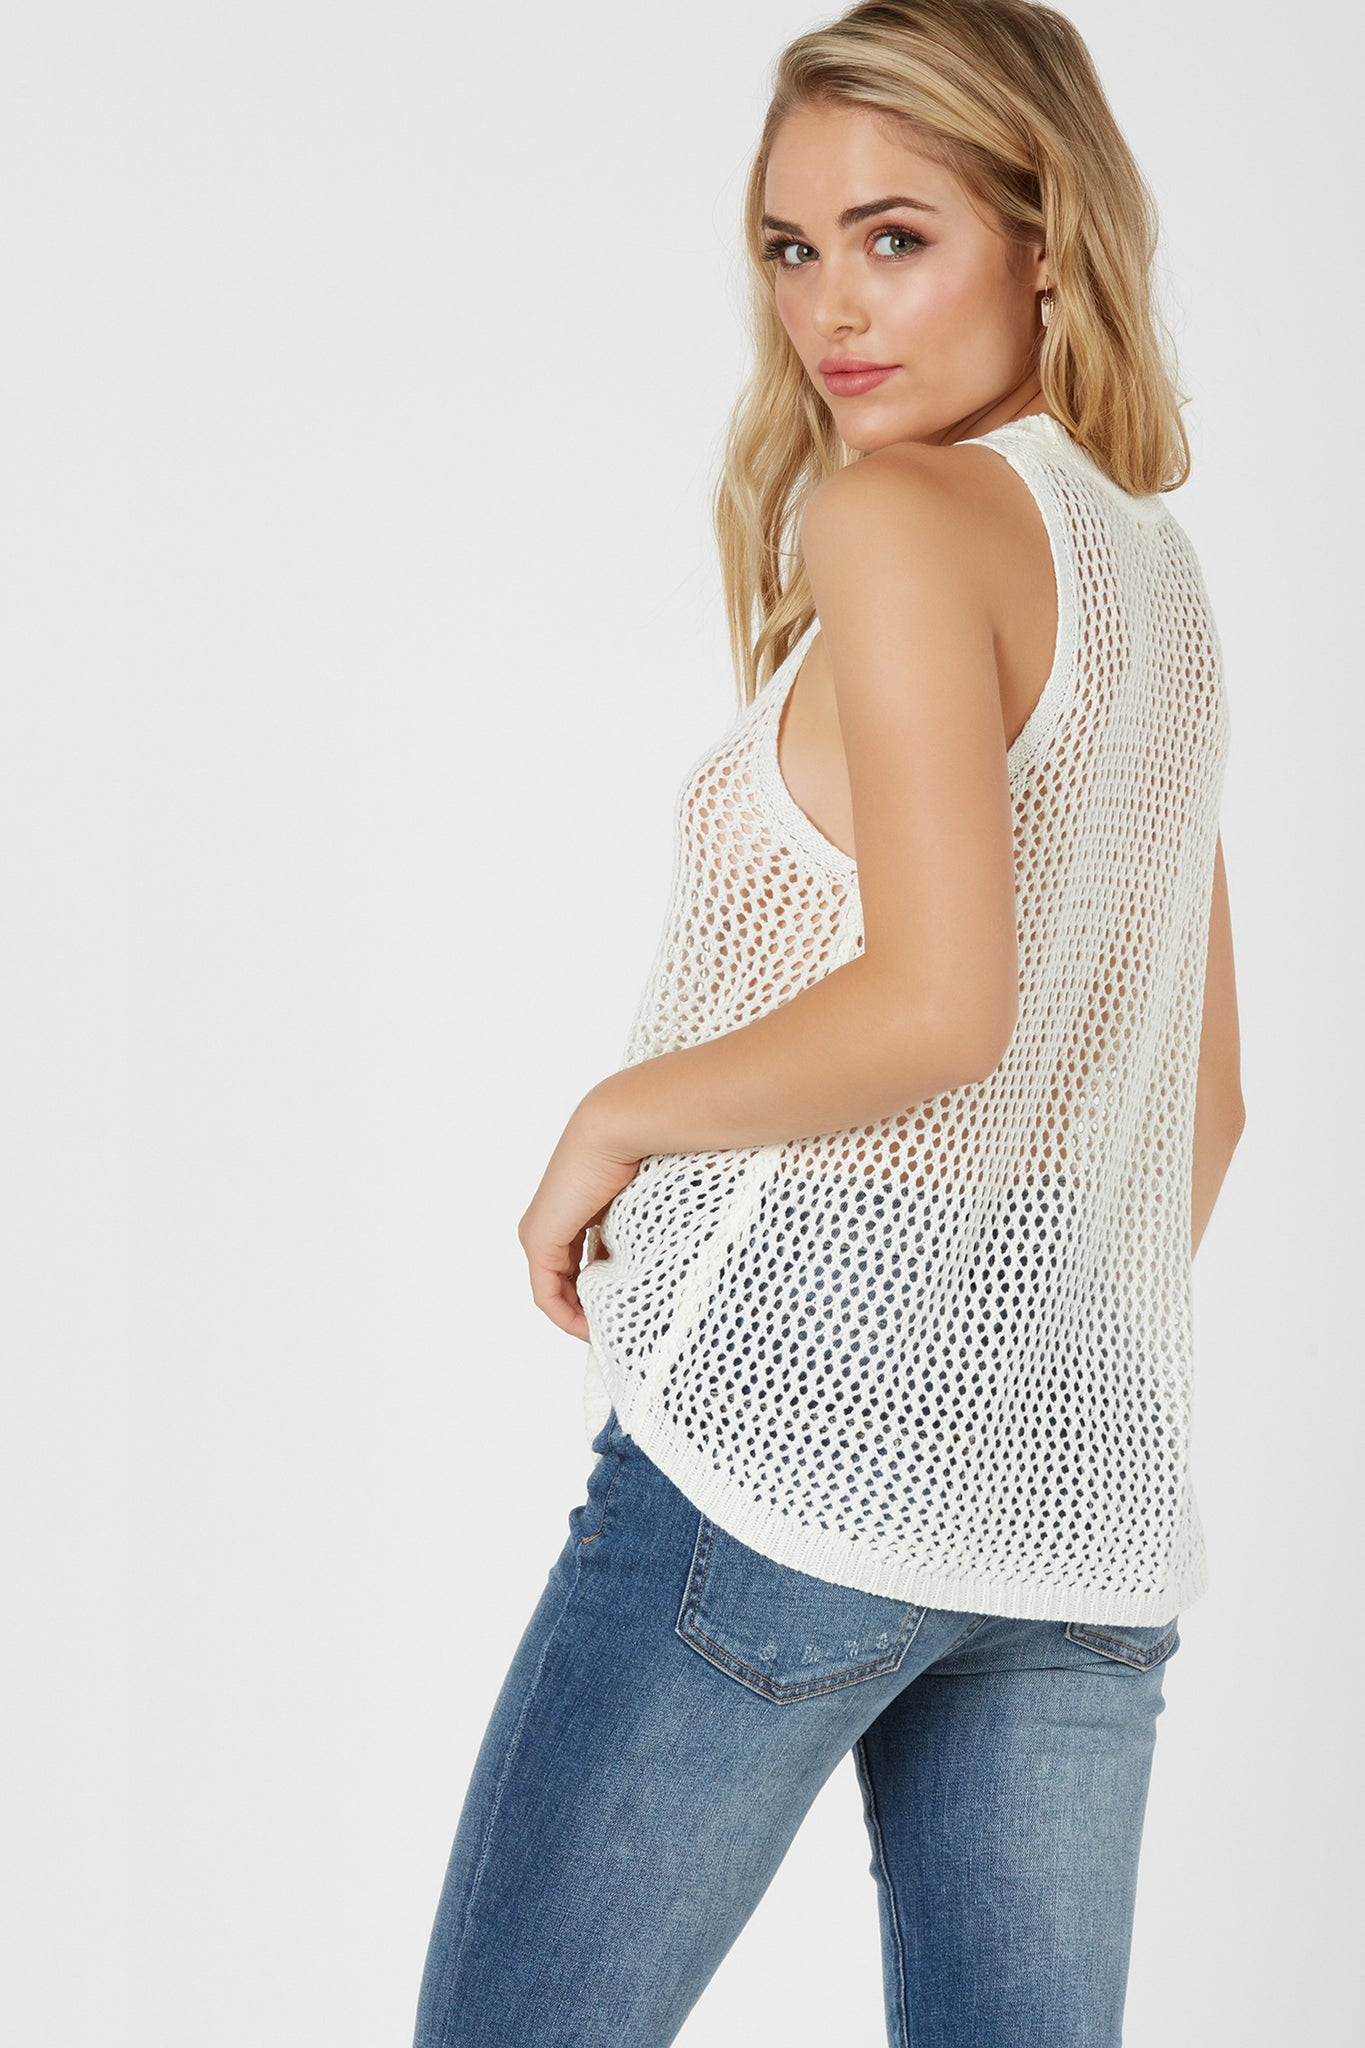 Casual sleeveless loose-knit top with V-shape cut out and lace up design. Relaxed fit with straight hem finish.